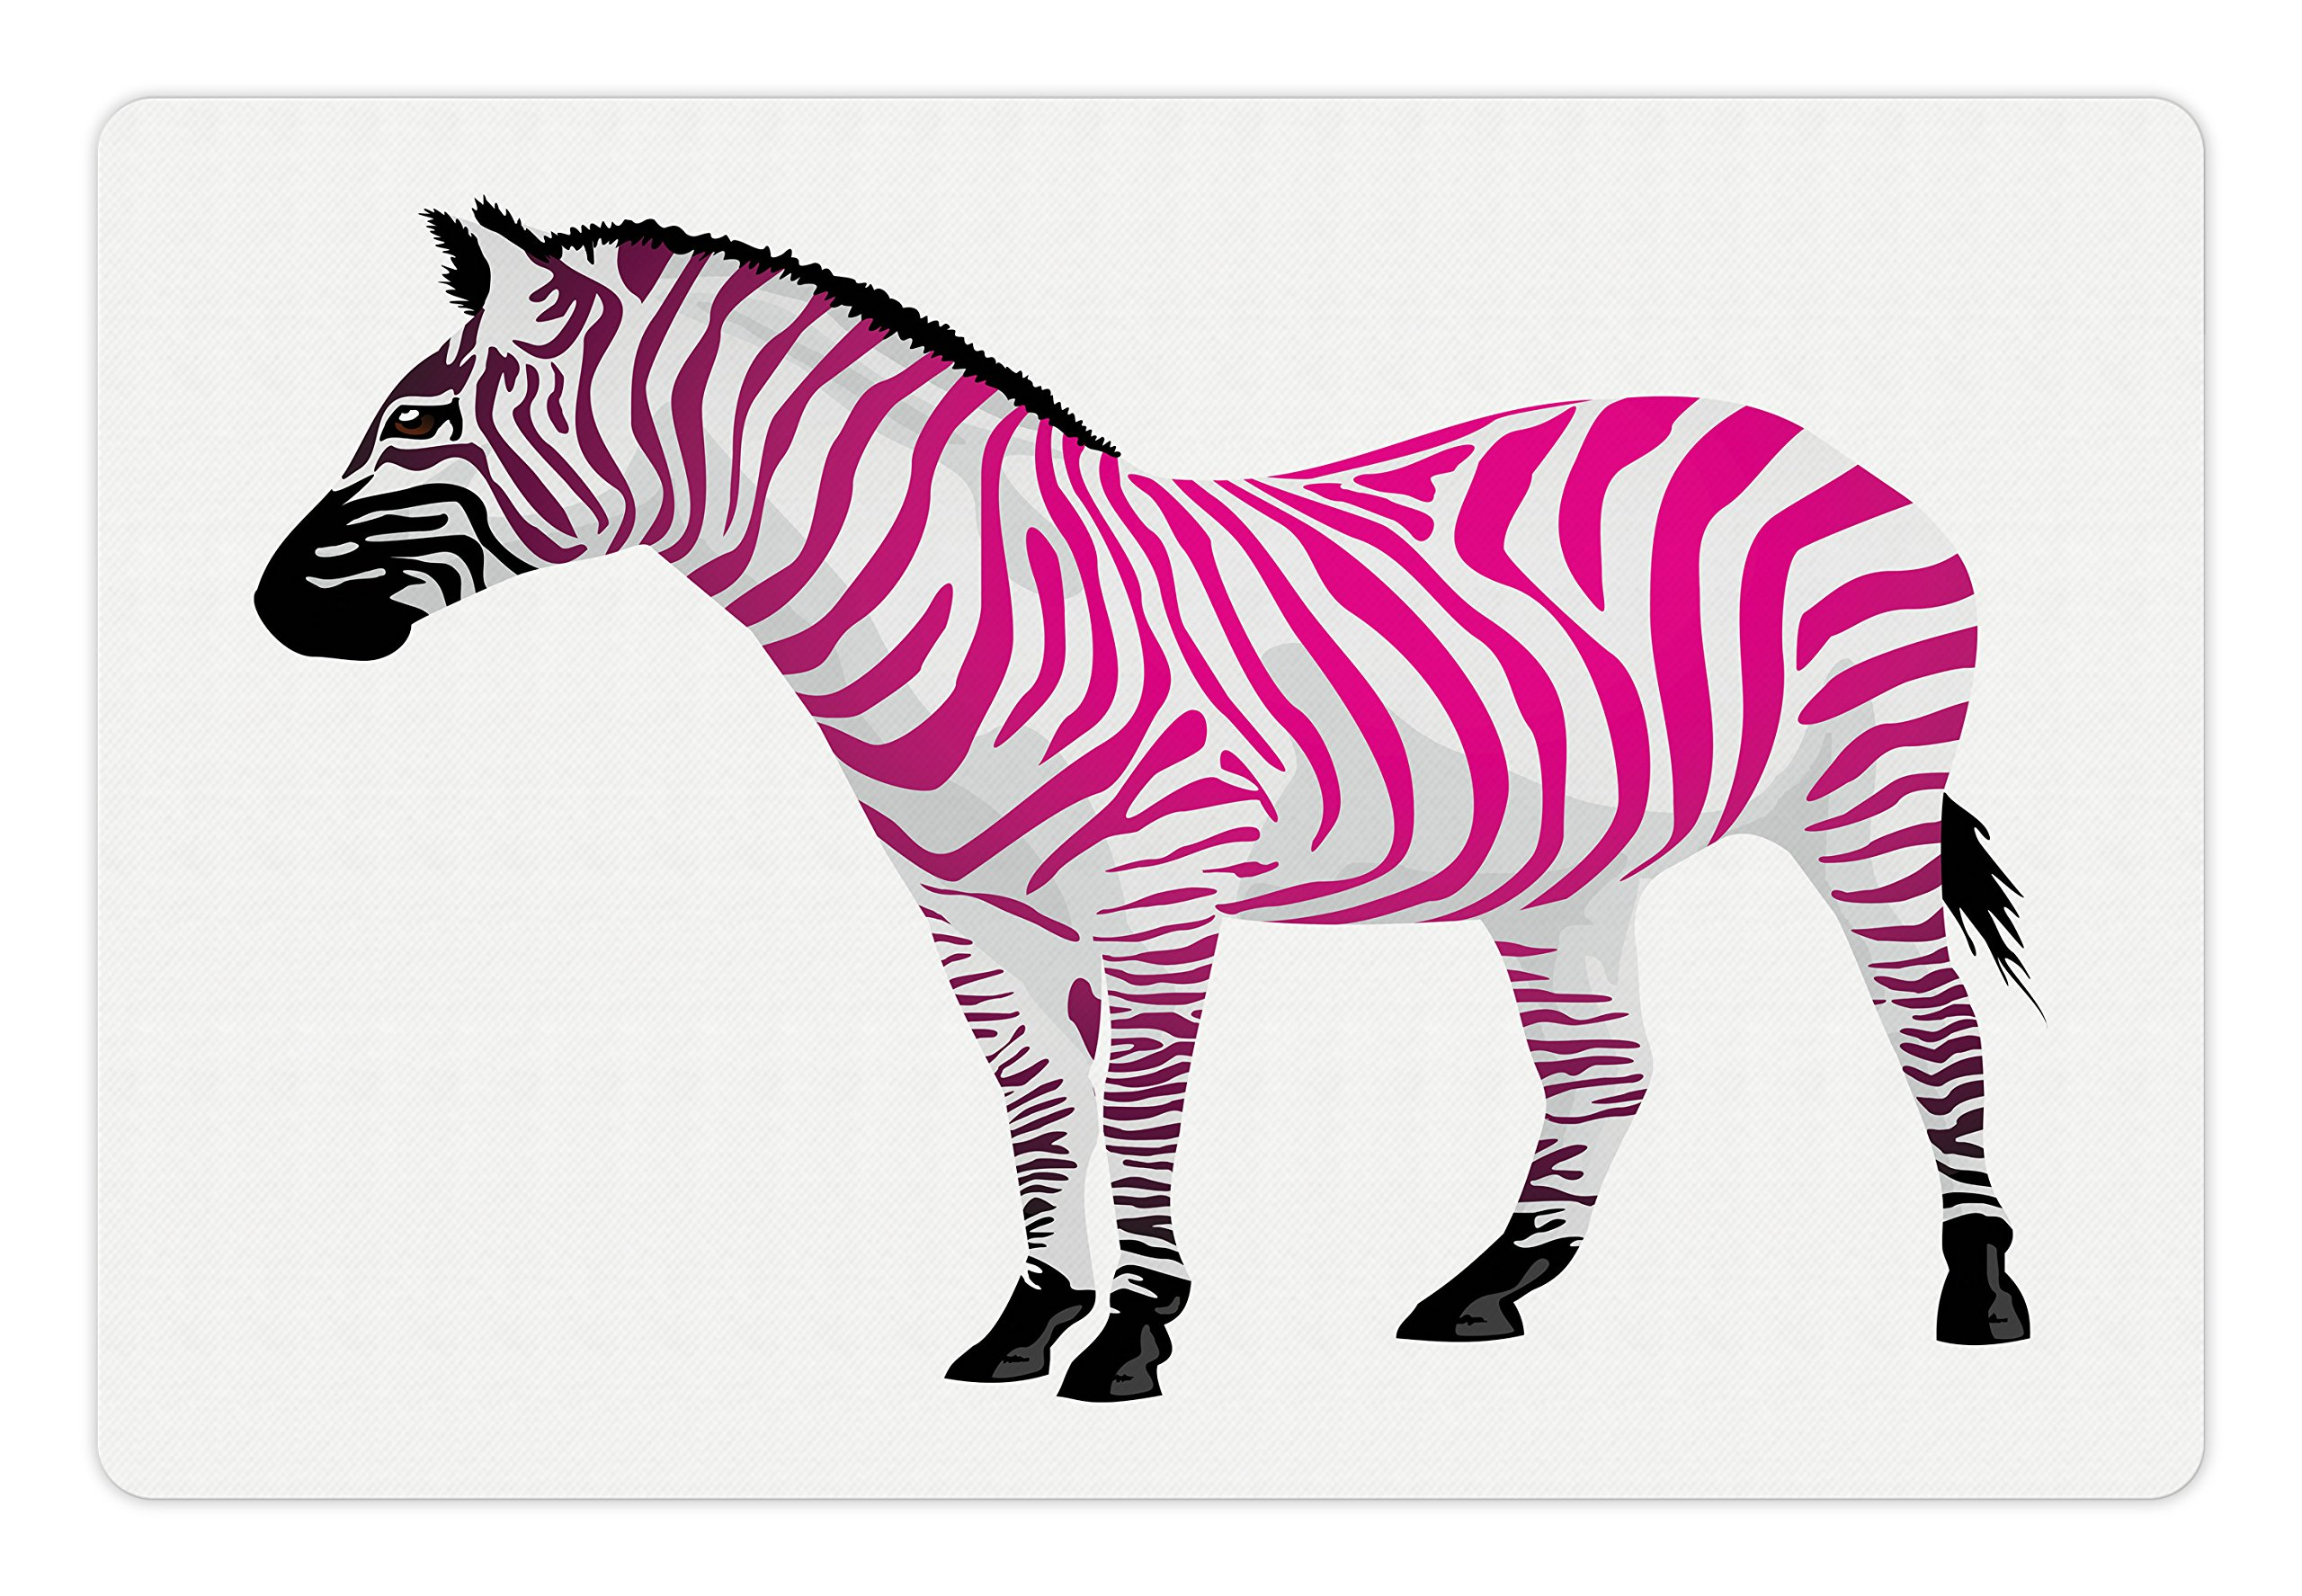 Ambesonne Pink Zebra Pet Mat for Food and Water, Zebra Figure in Pink Stripes Savannah Animal Wilderness Symbol Safari Print, Rectangle Non-Slip Rubber Mat for Dogs and Cats, Dust Black